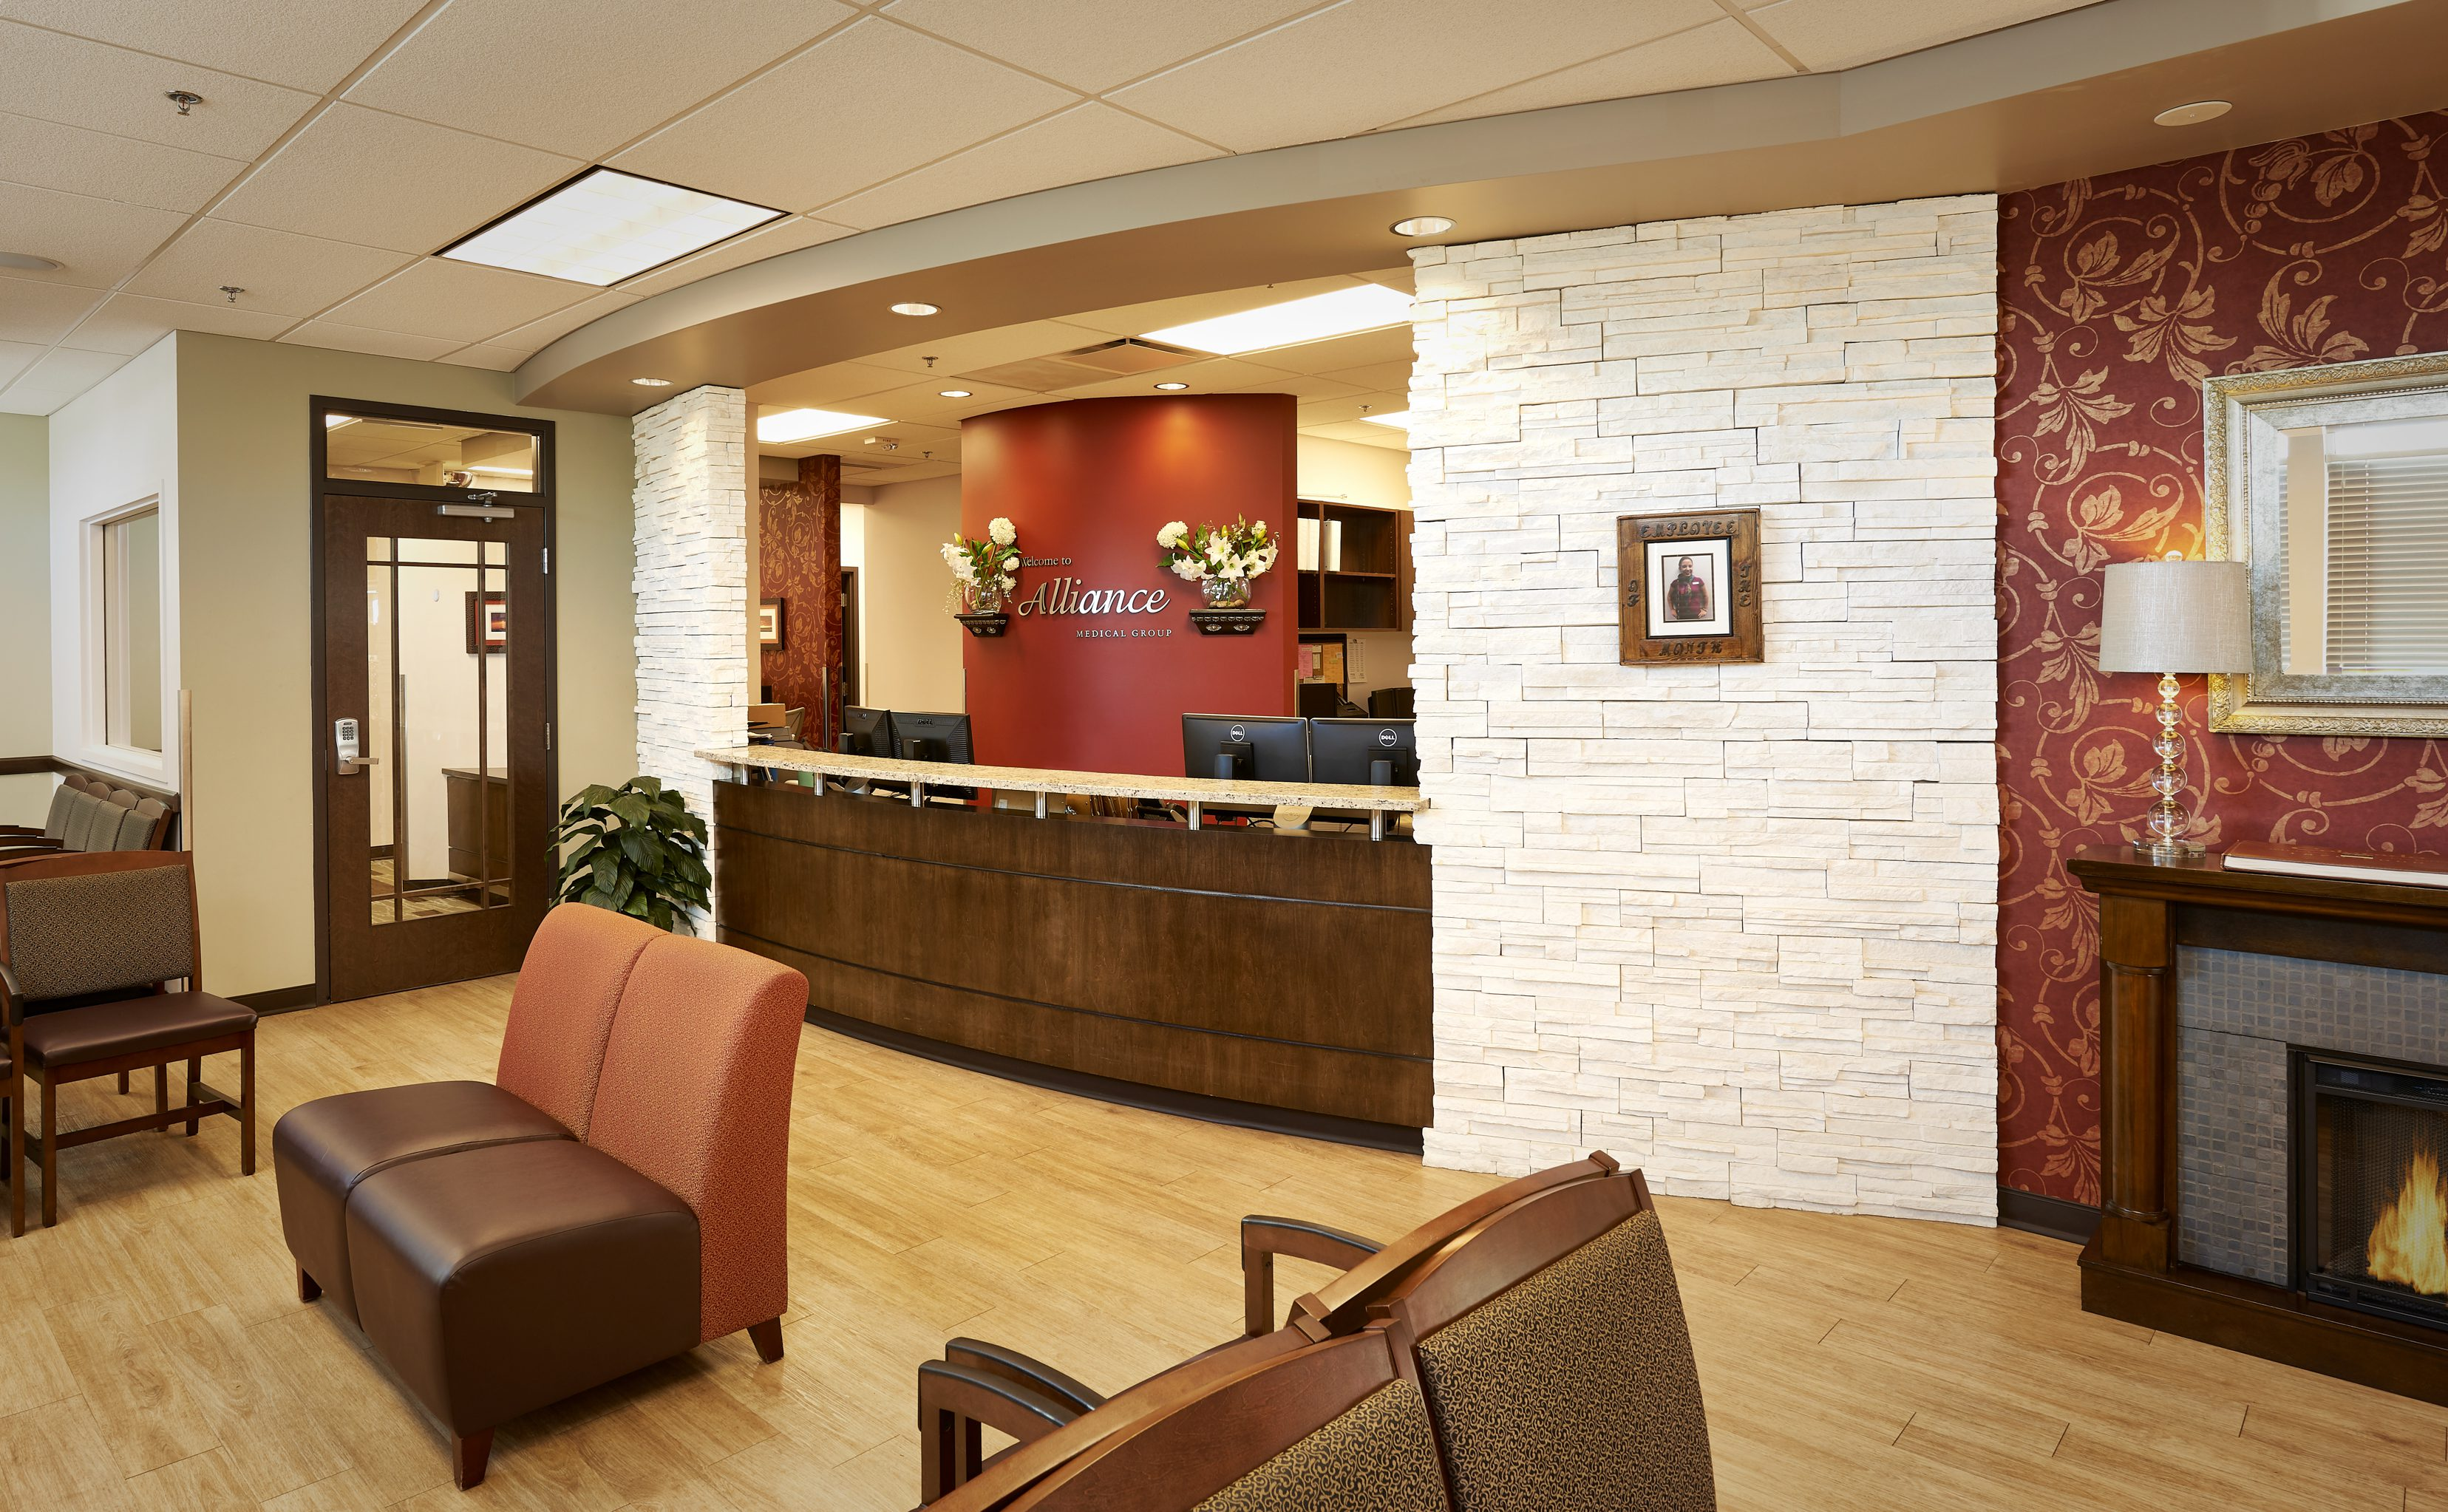 Alliance Urgent Care Interior Lobby Waiting Room Area